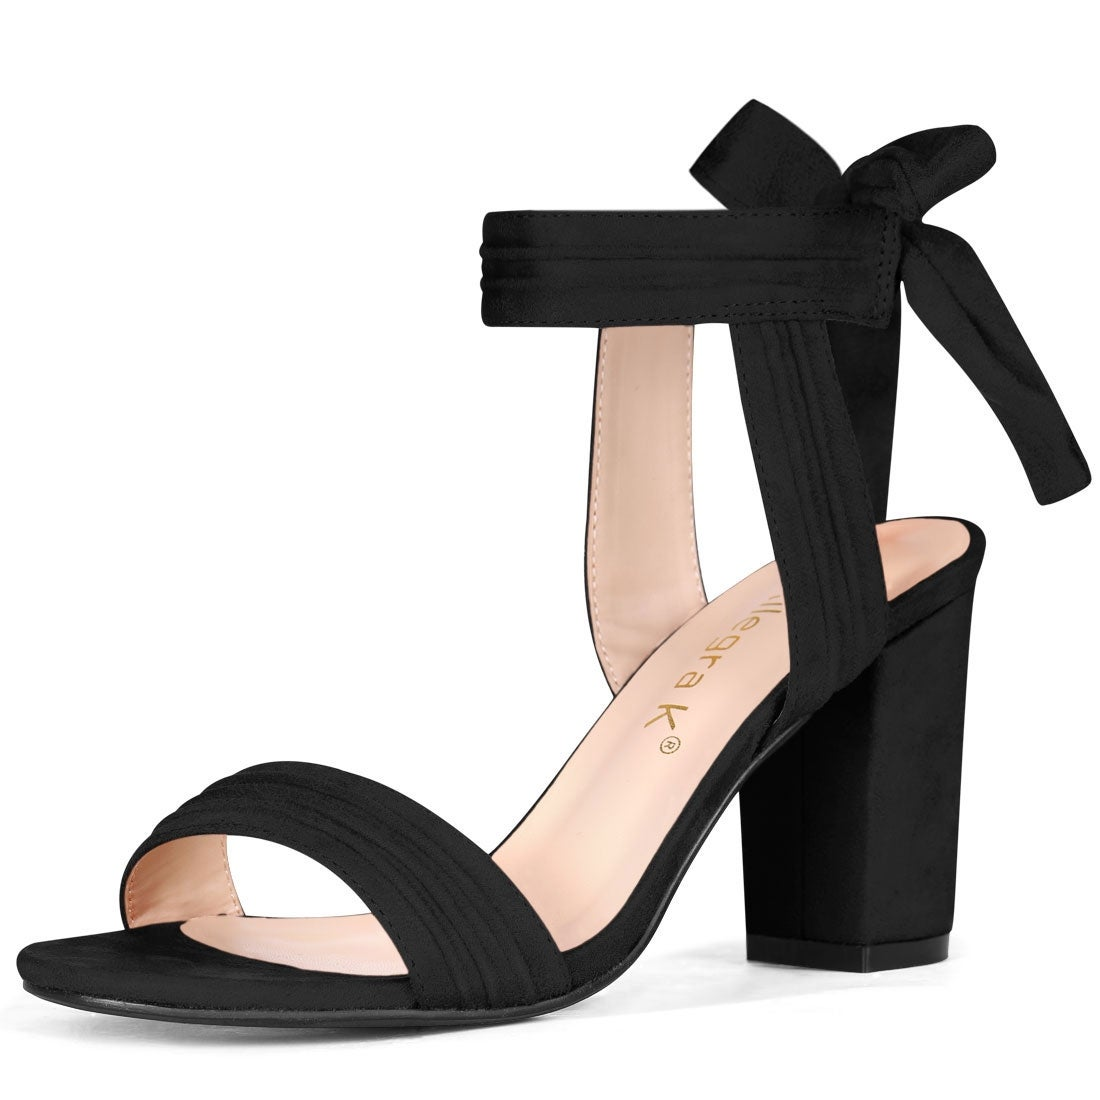 Sandals With Chunky Heel